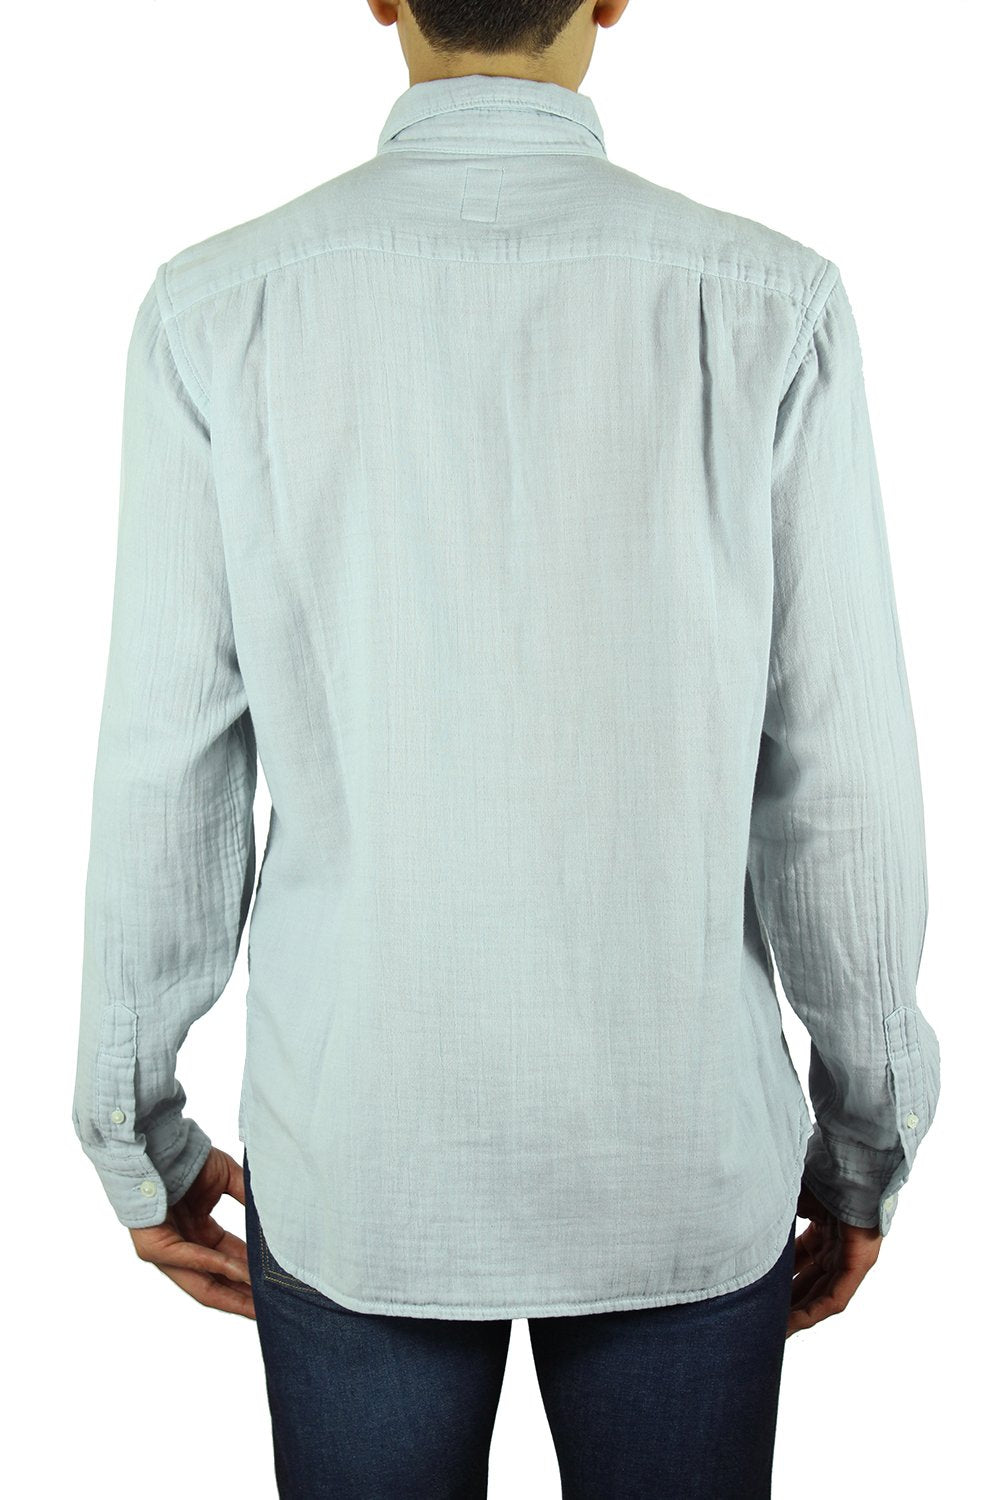 """THE RIPPER"" - GRAY BLUE VINTAGE DOUBLE GAUZE SLIM FRENCH SEAM L/S SHIRT"